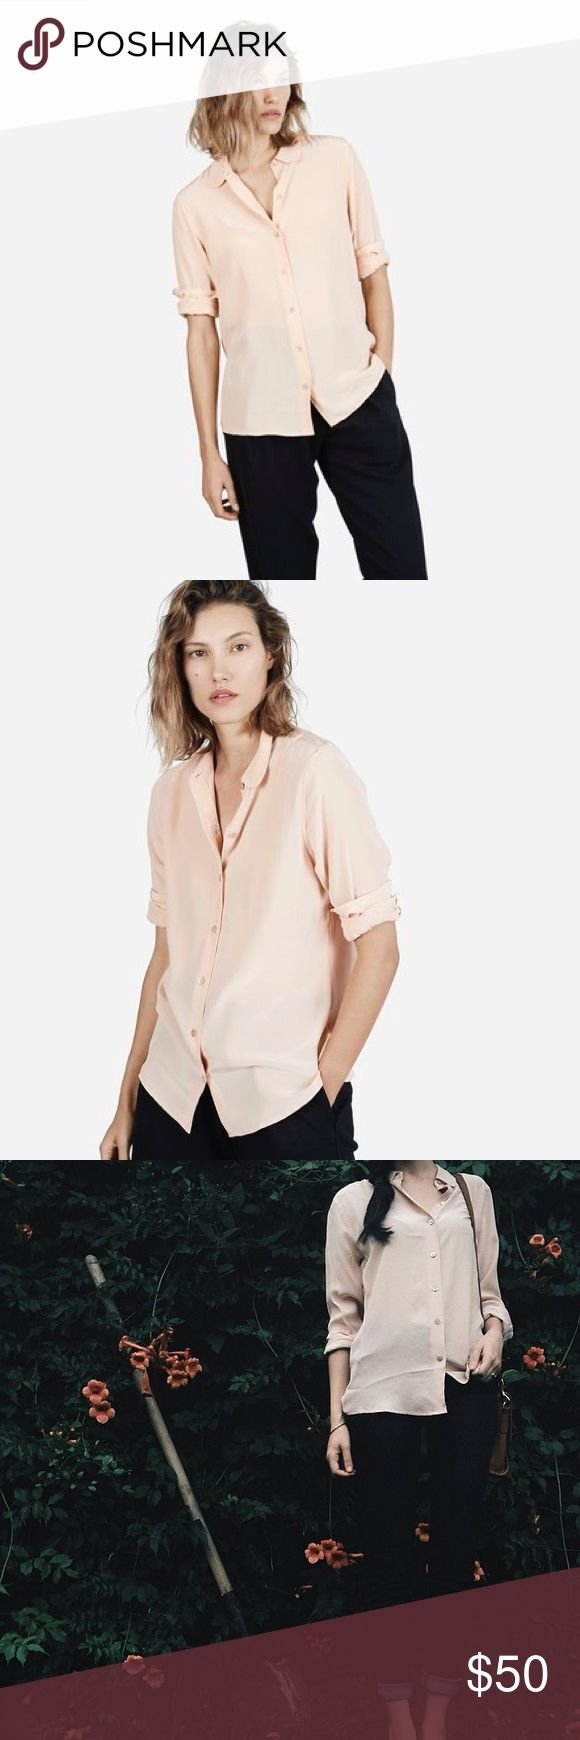 NWOT Everlane Silk Round Collar Shirt in Nude Everlane round collar silk button down. Beautiful shade of blush / nude / beige. New without tags. Sold out, no longer available, retailed for $78. Everlane Tops Button Down Shirts